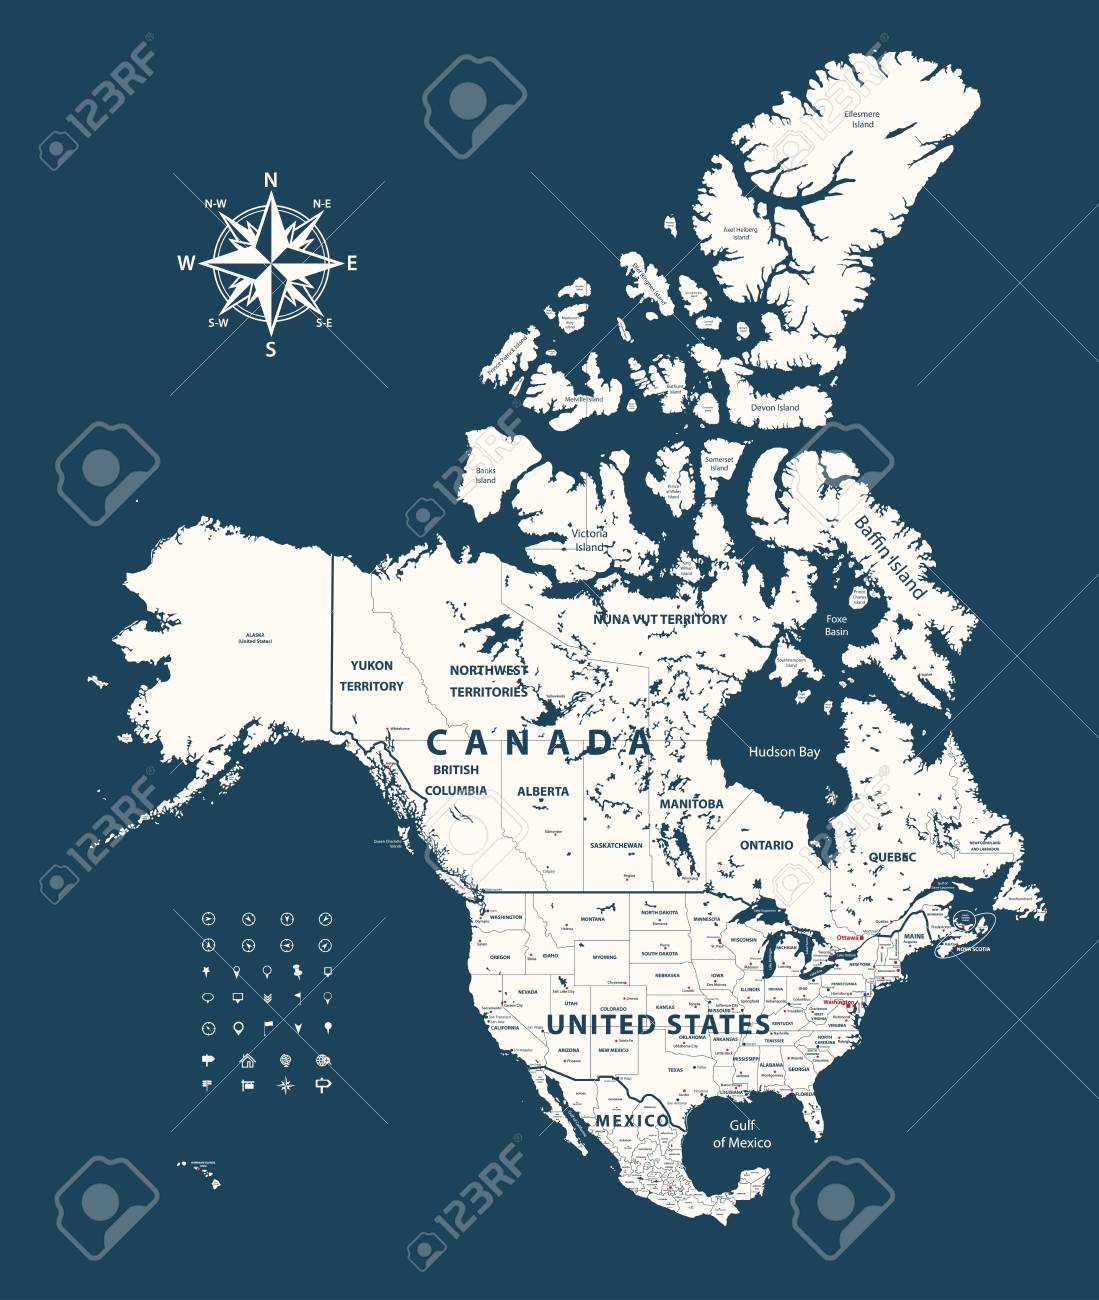 Canada, United States and Mexico vector map with states borders..